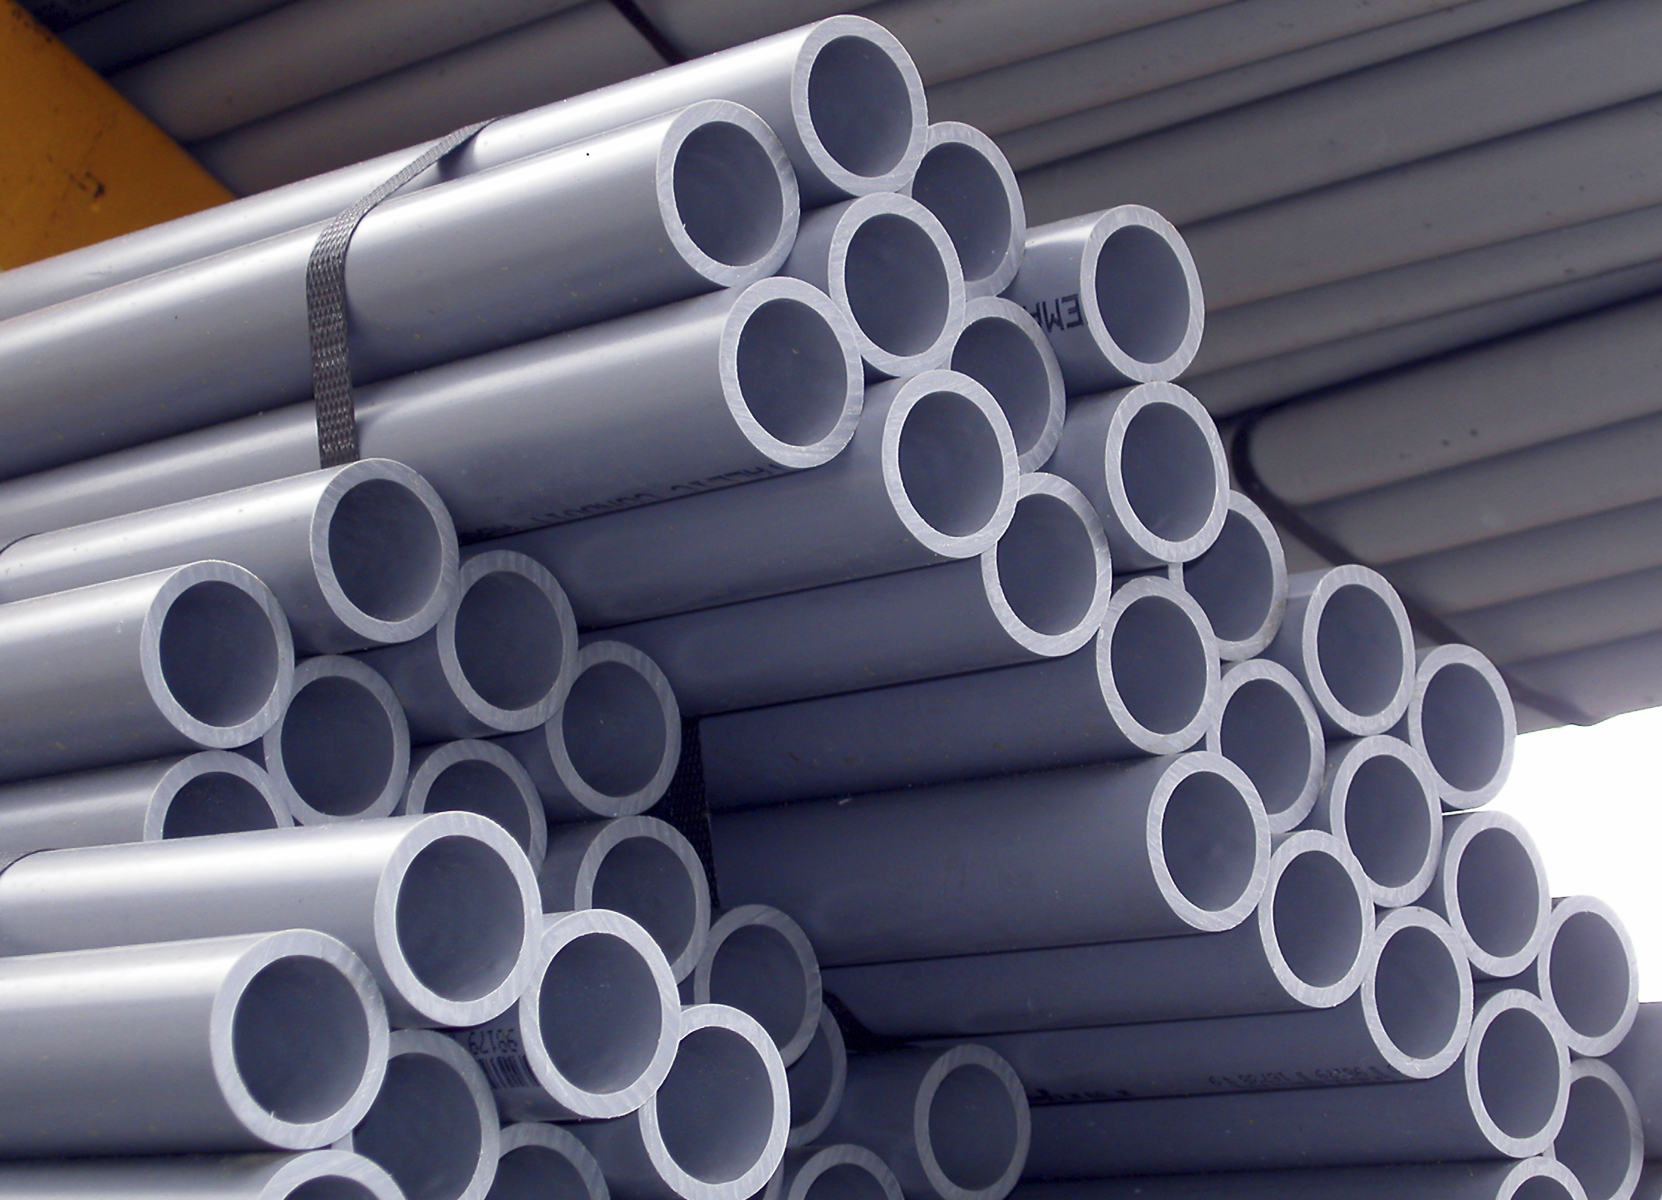 Pvc Industrial Products Keeps A Wide Range Of Cpvc Pipe